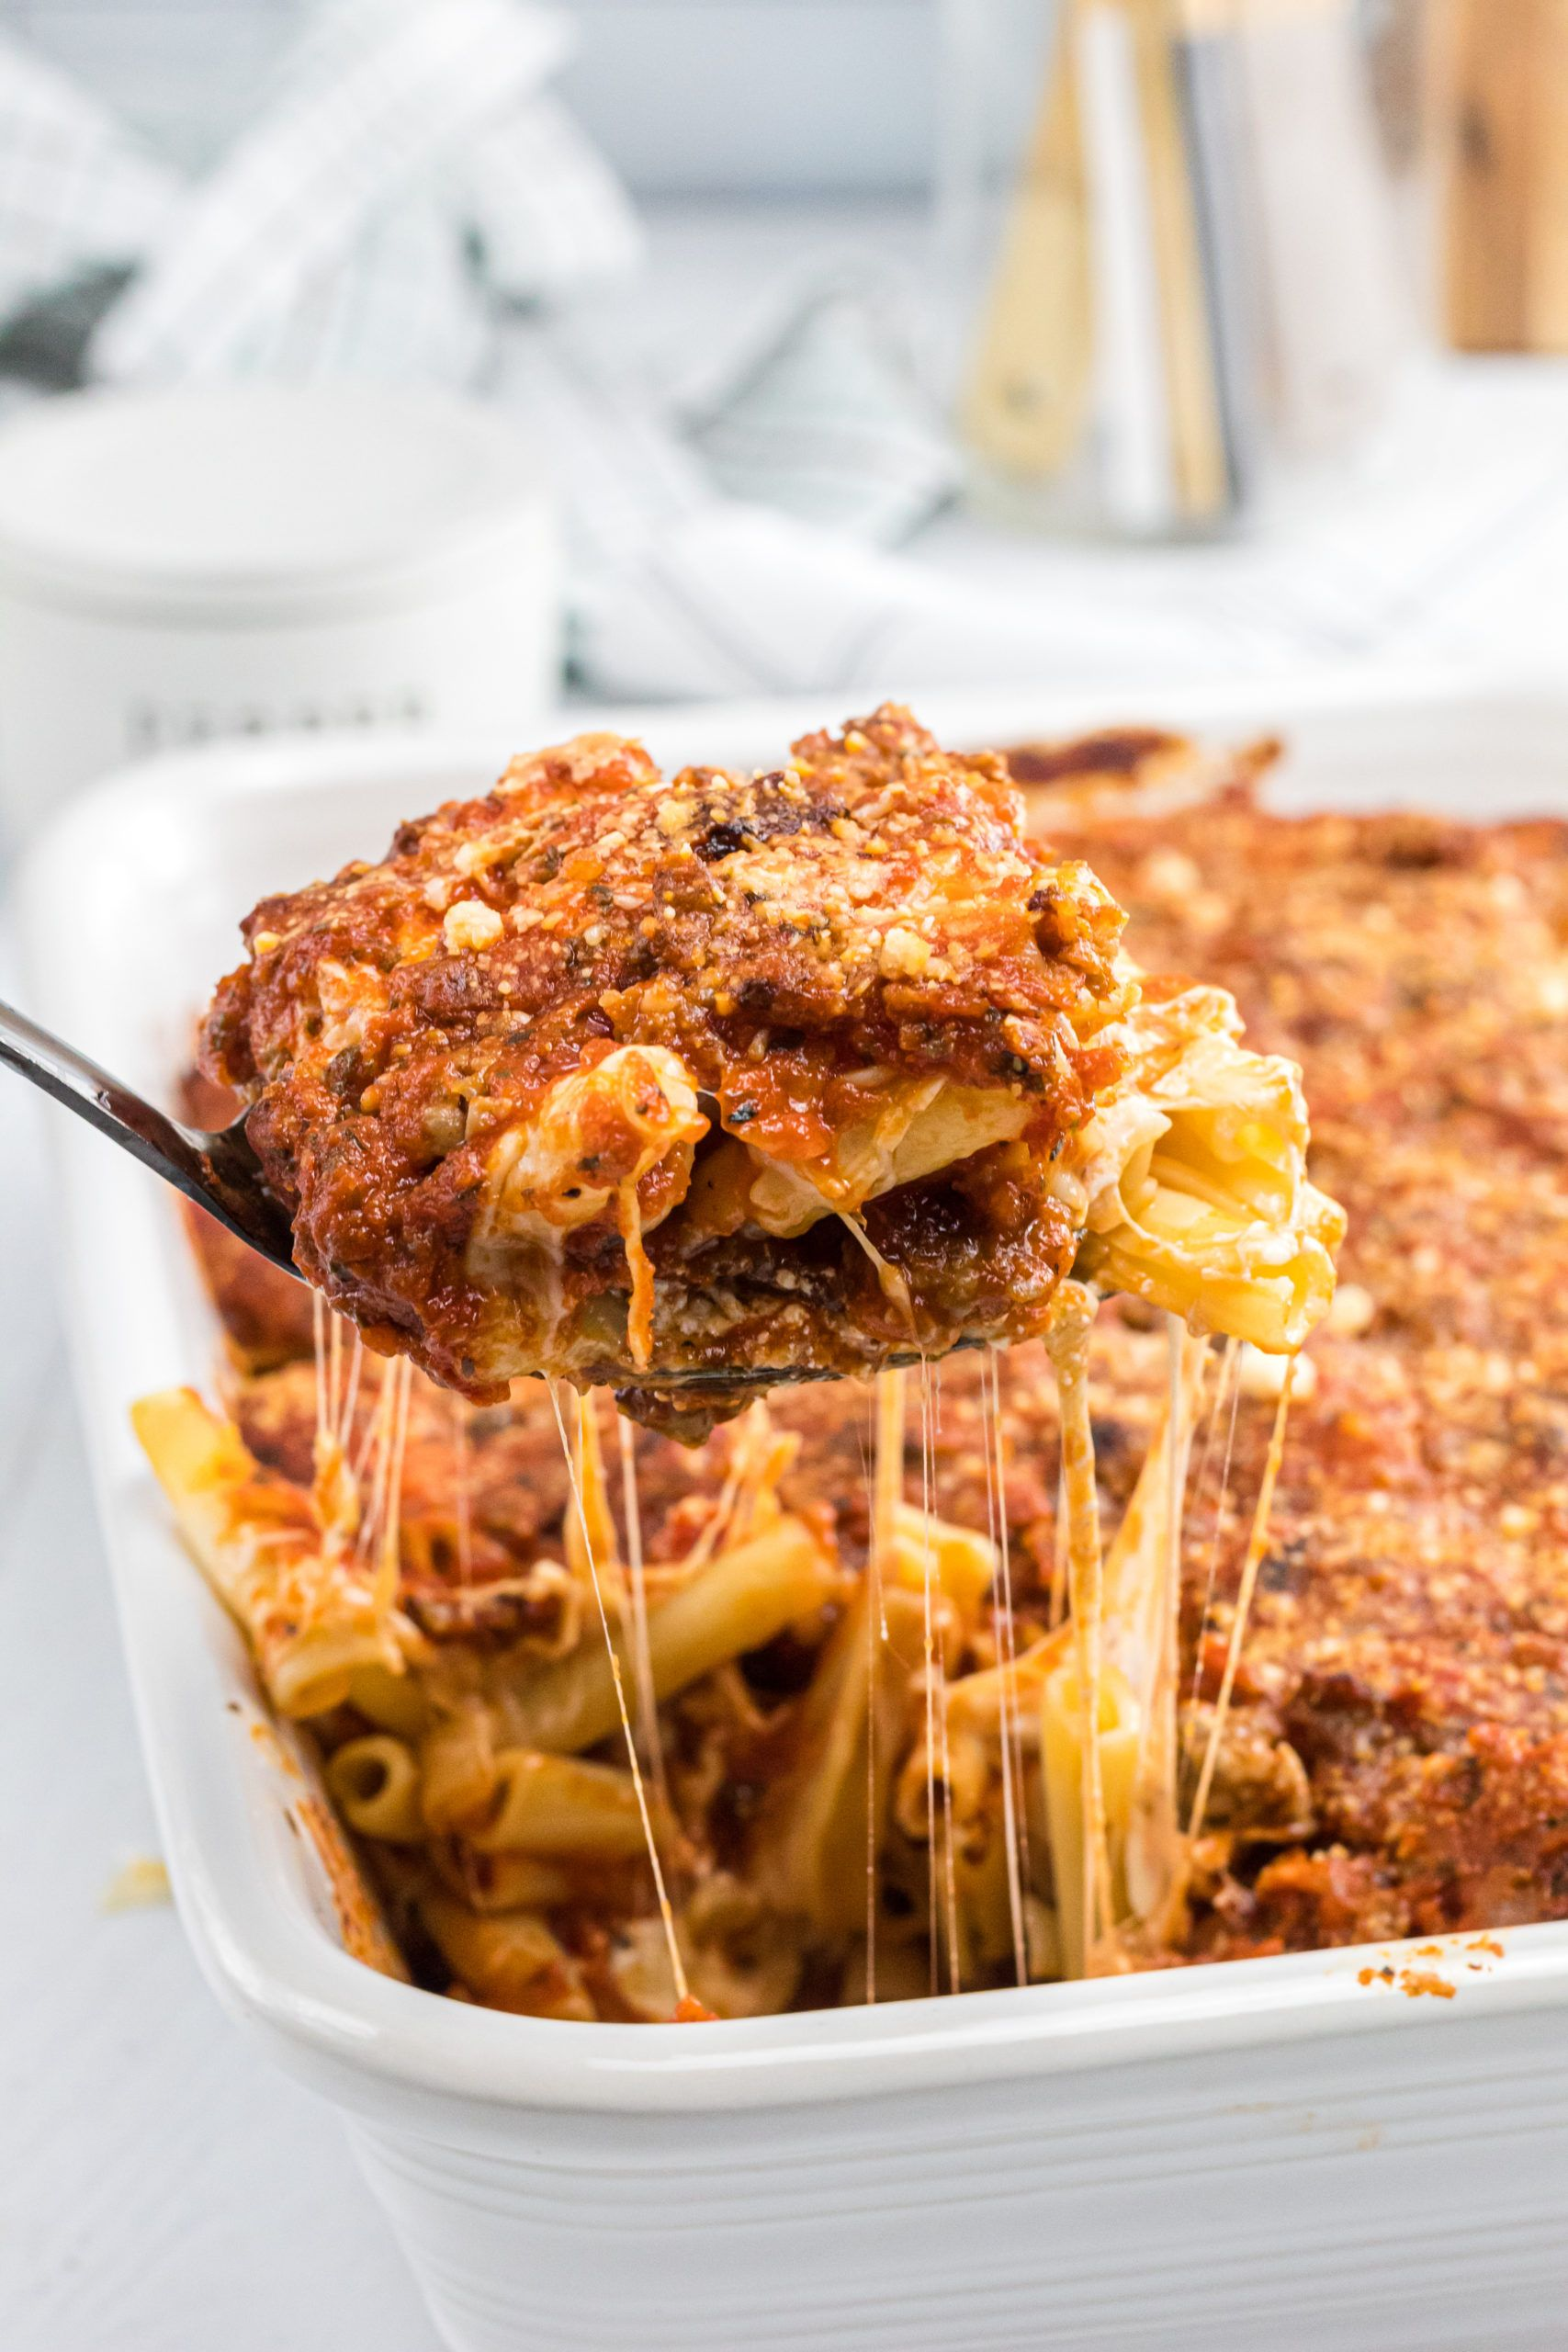 World S Best Baked Ziti Must Try Recipe Made It Ate It Loved It Recipe In 2020 Baked Ziti Eat Cooking For A Crowd